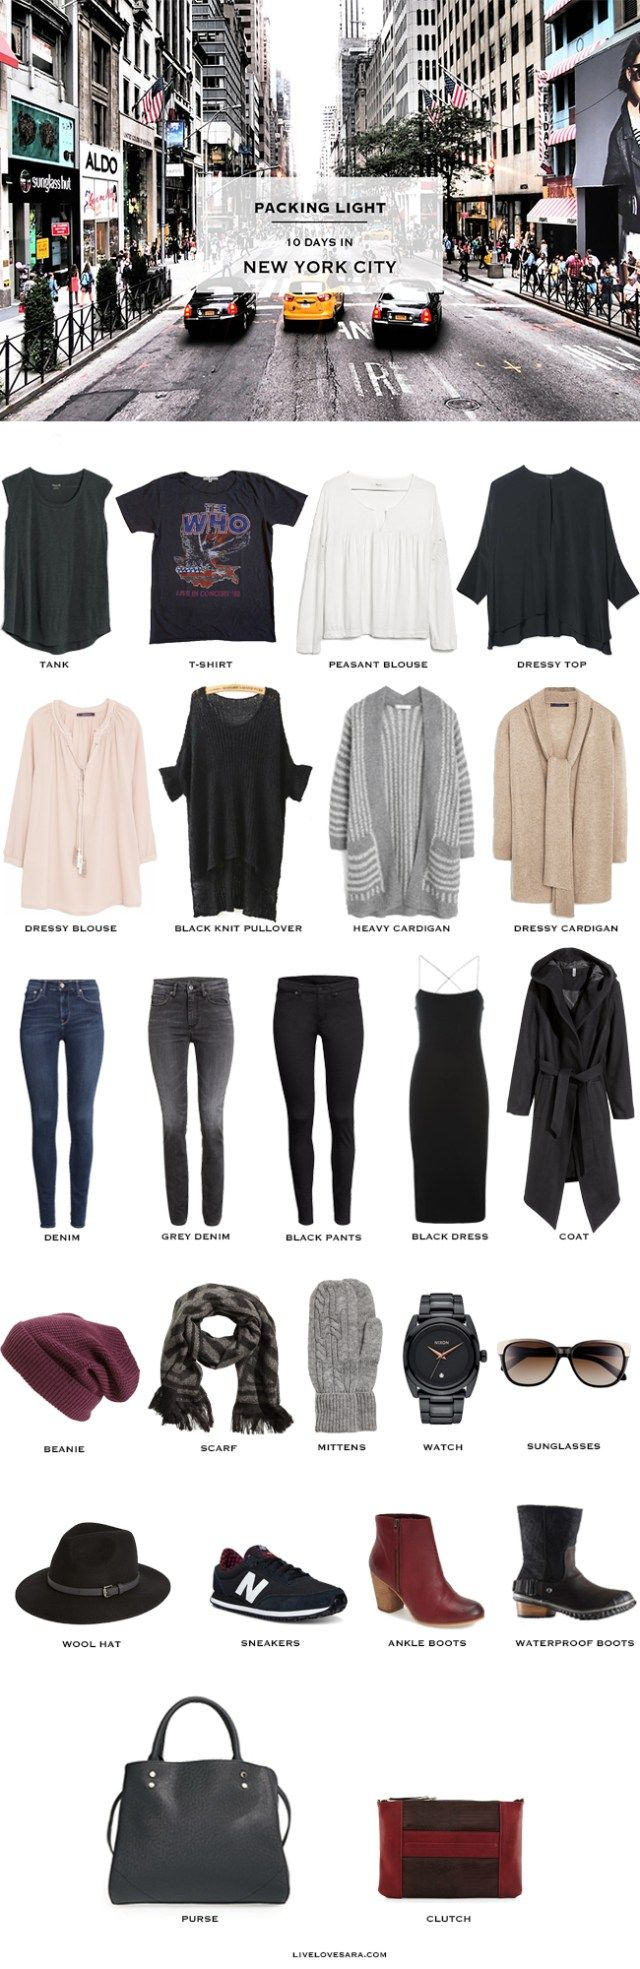 New York City Winter Packing List